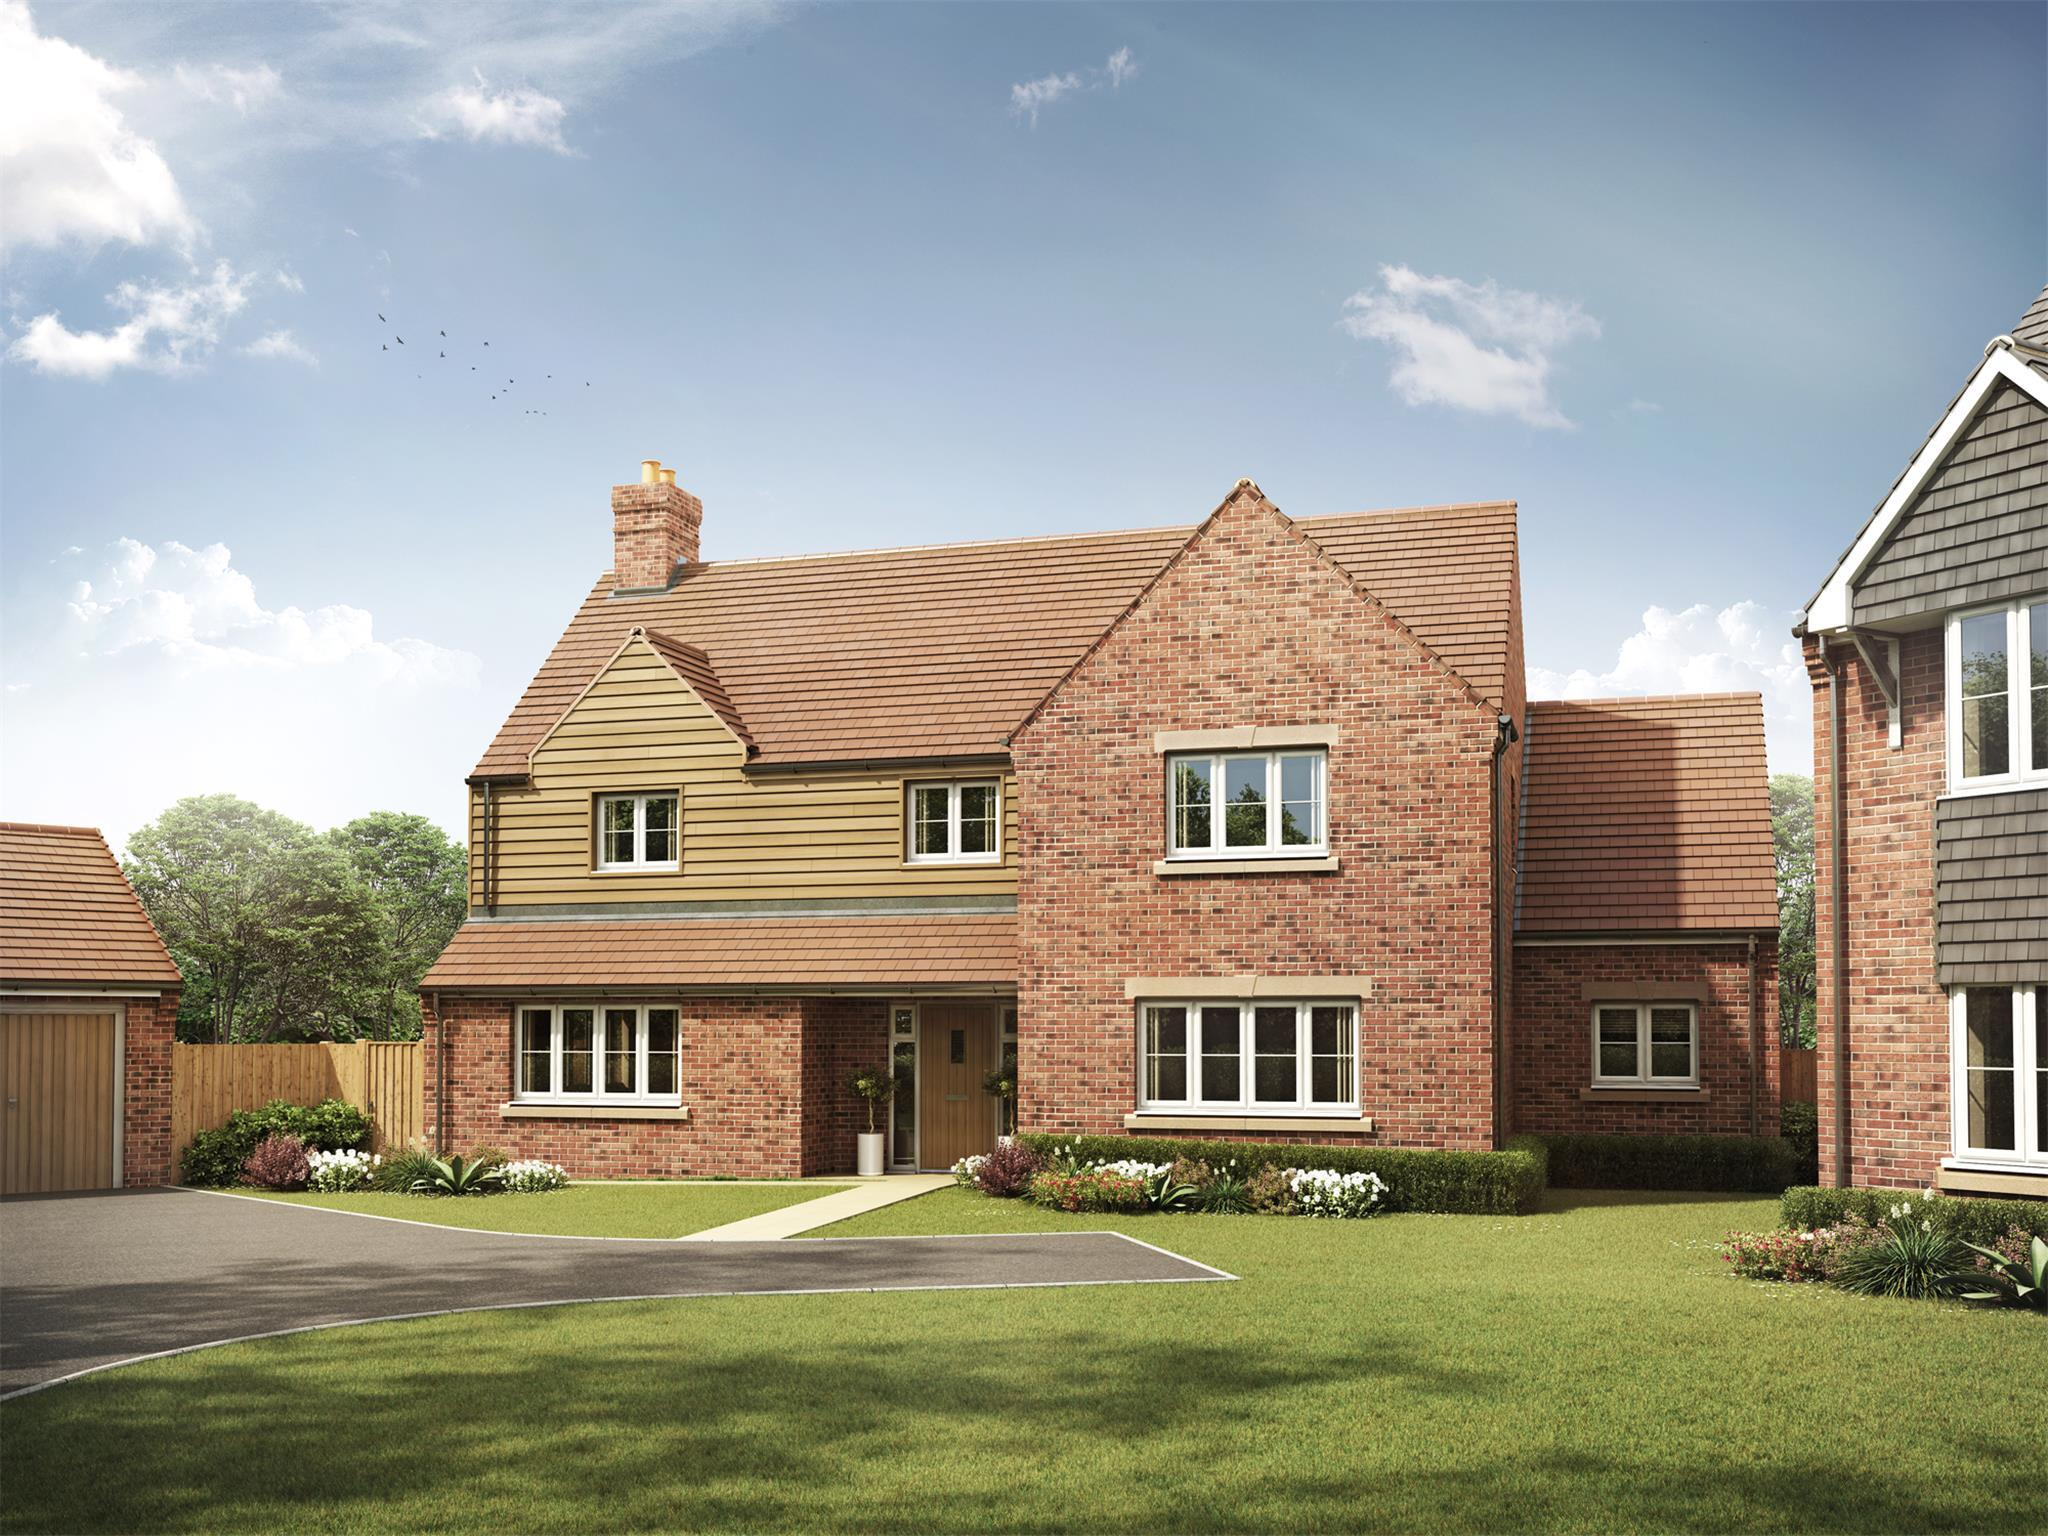 Plot 19, The Oakridge, Lime Grove, Norton, Glos GL2